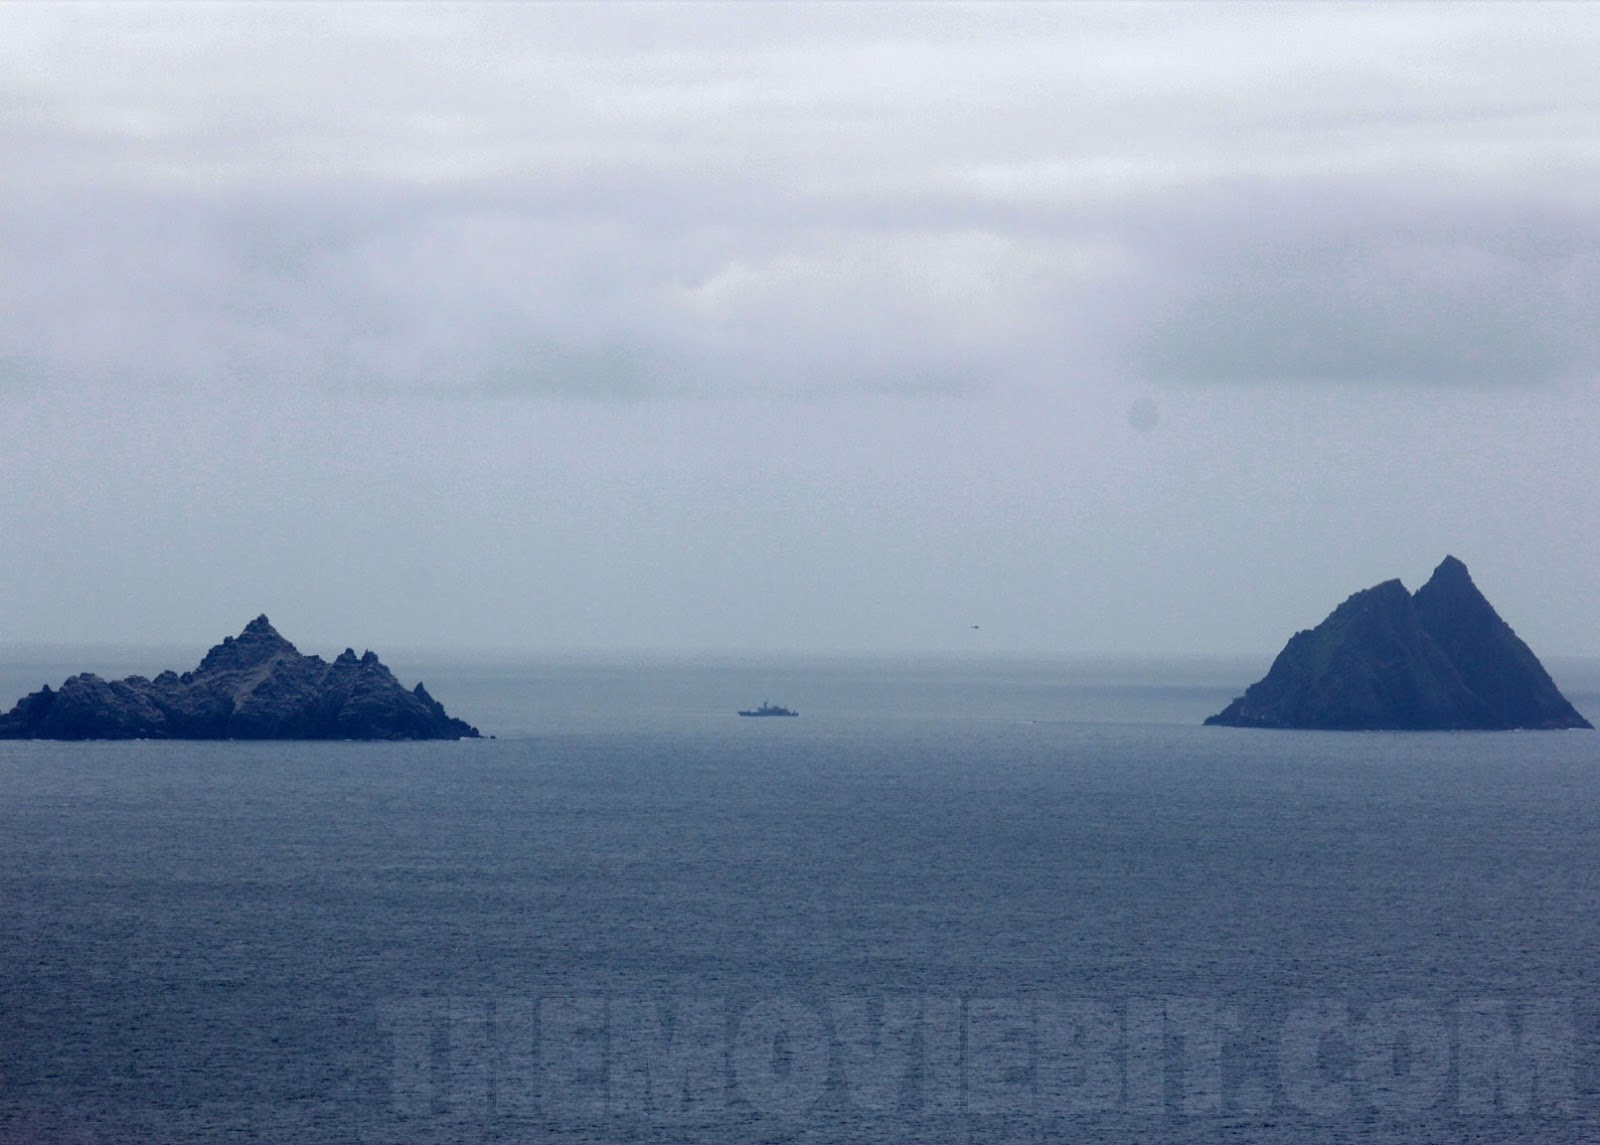 star-wars-kerry-navy-exclusion-zone-skellig-michael[3]